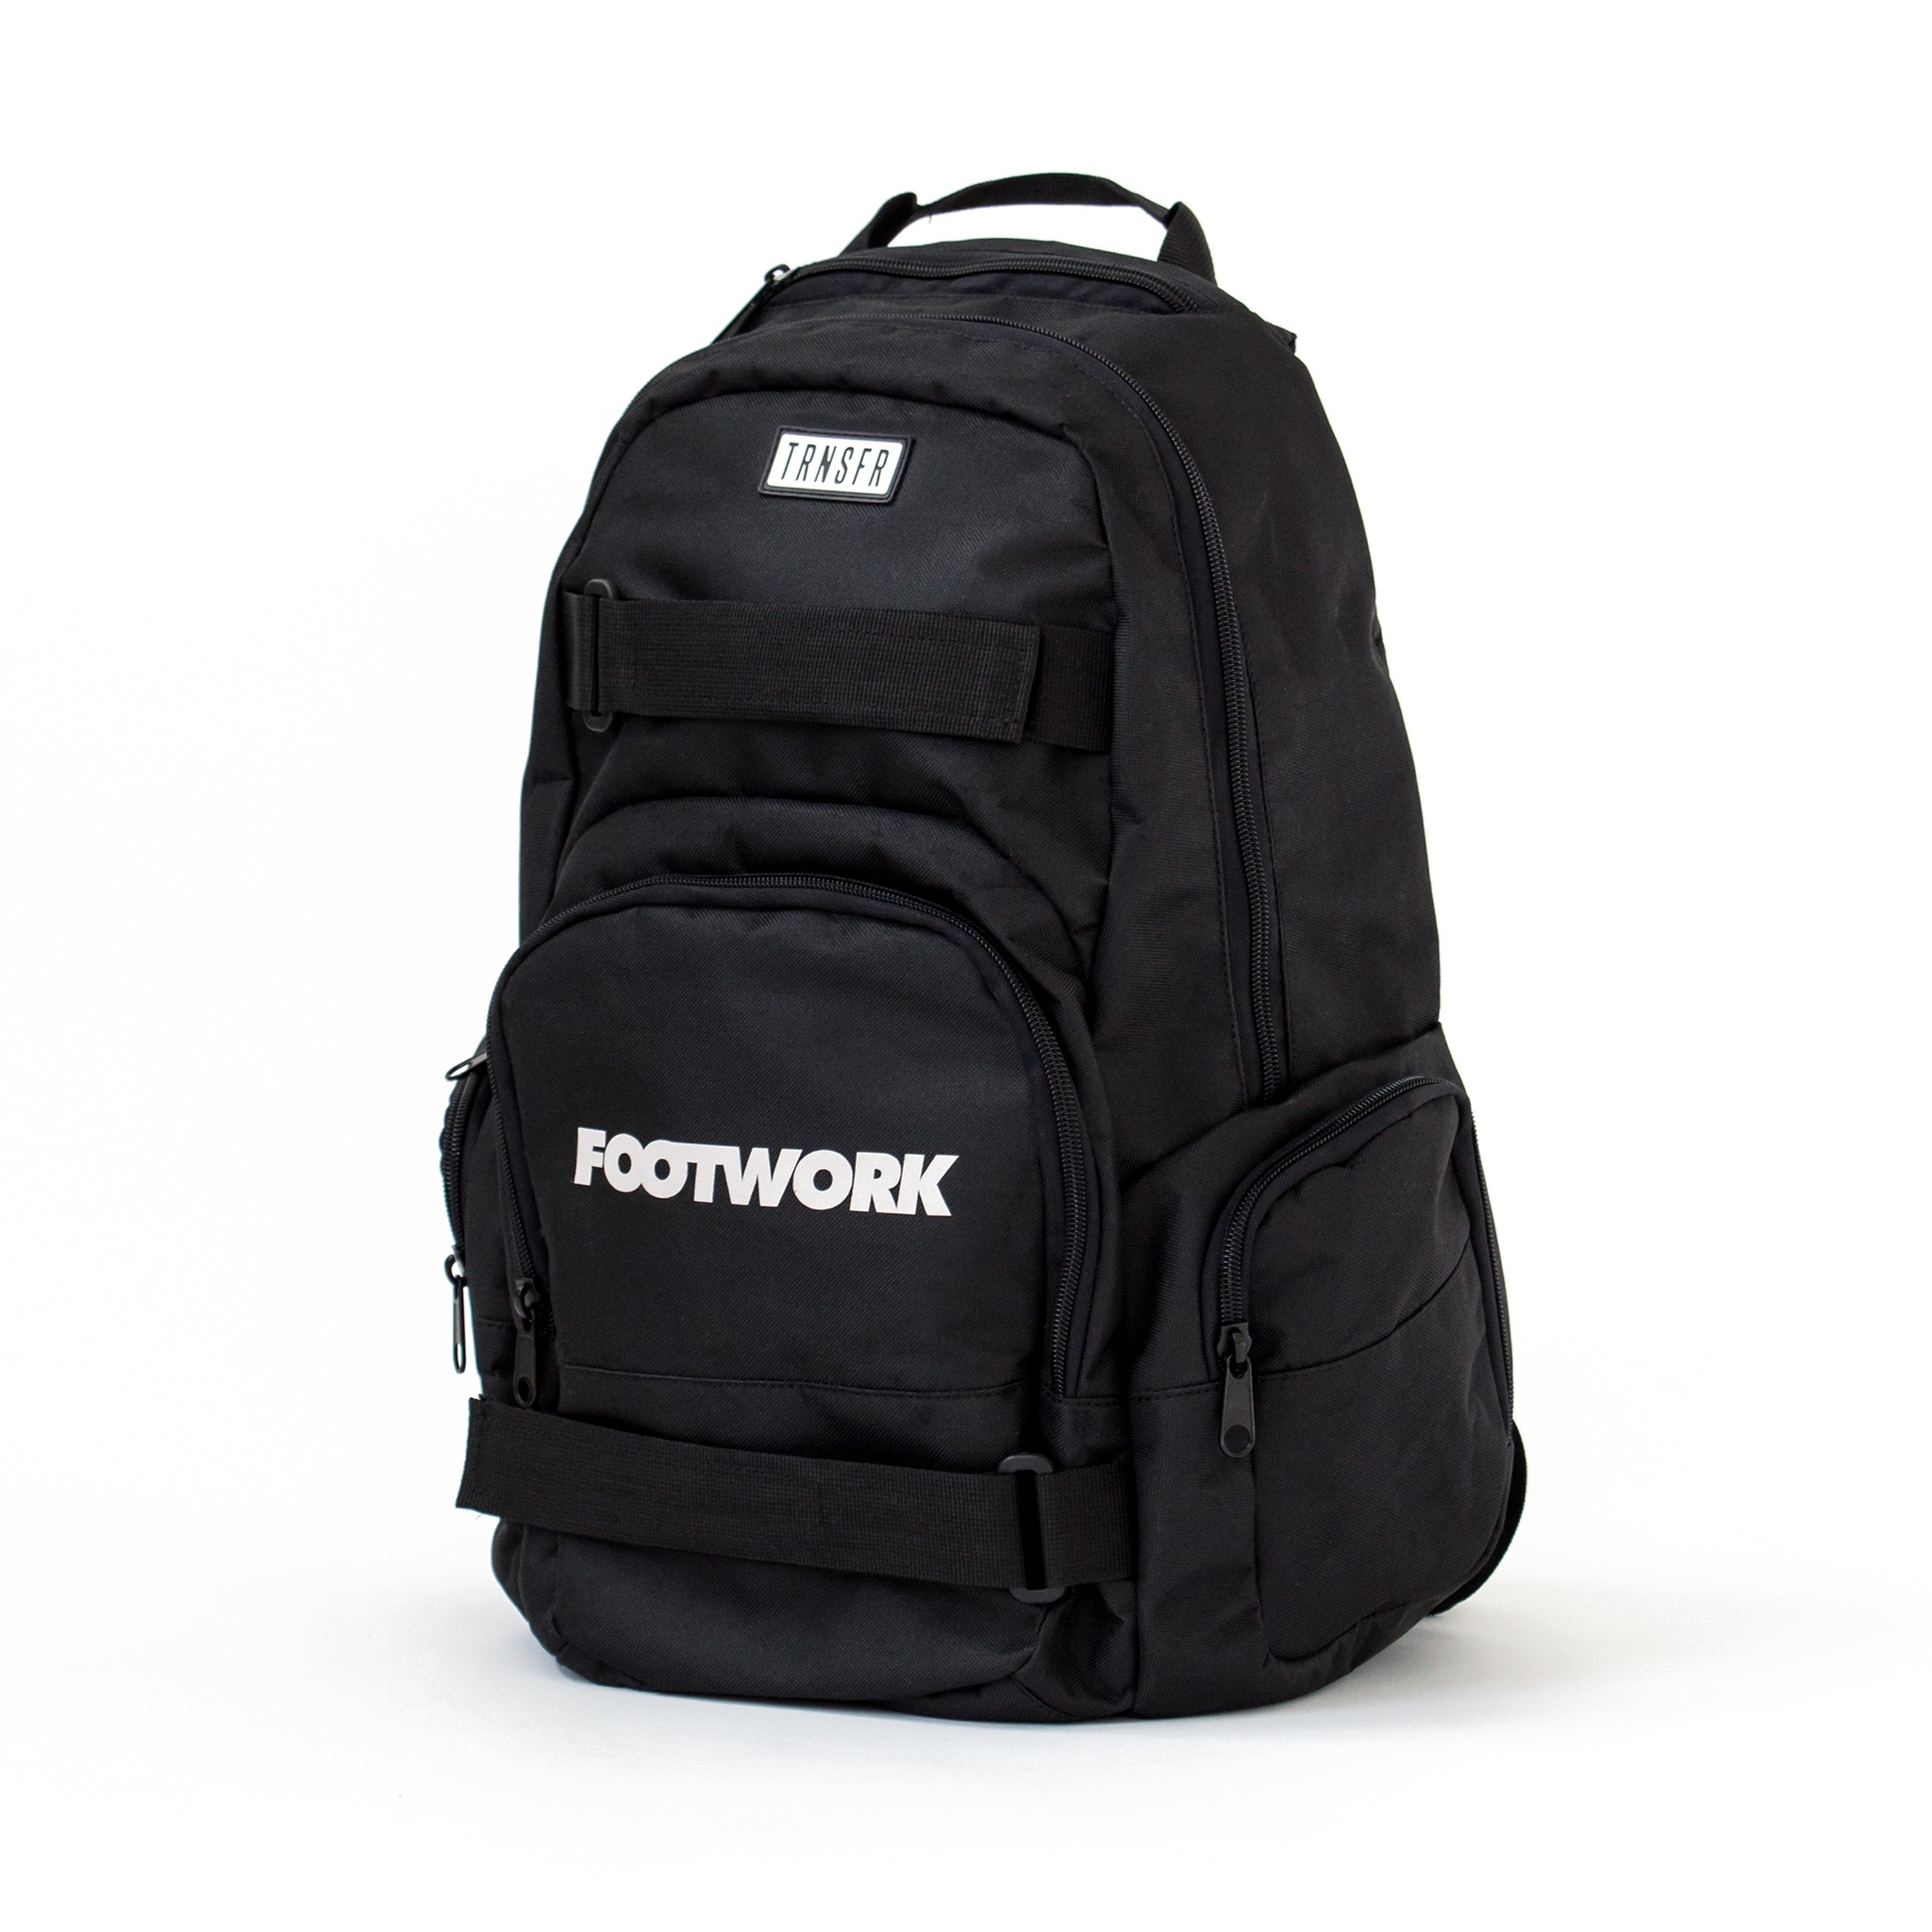 Рюкзак для скейта FOOTWORK x TRANSFER (Black)